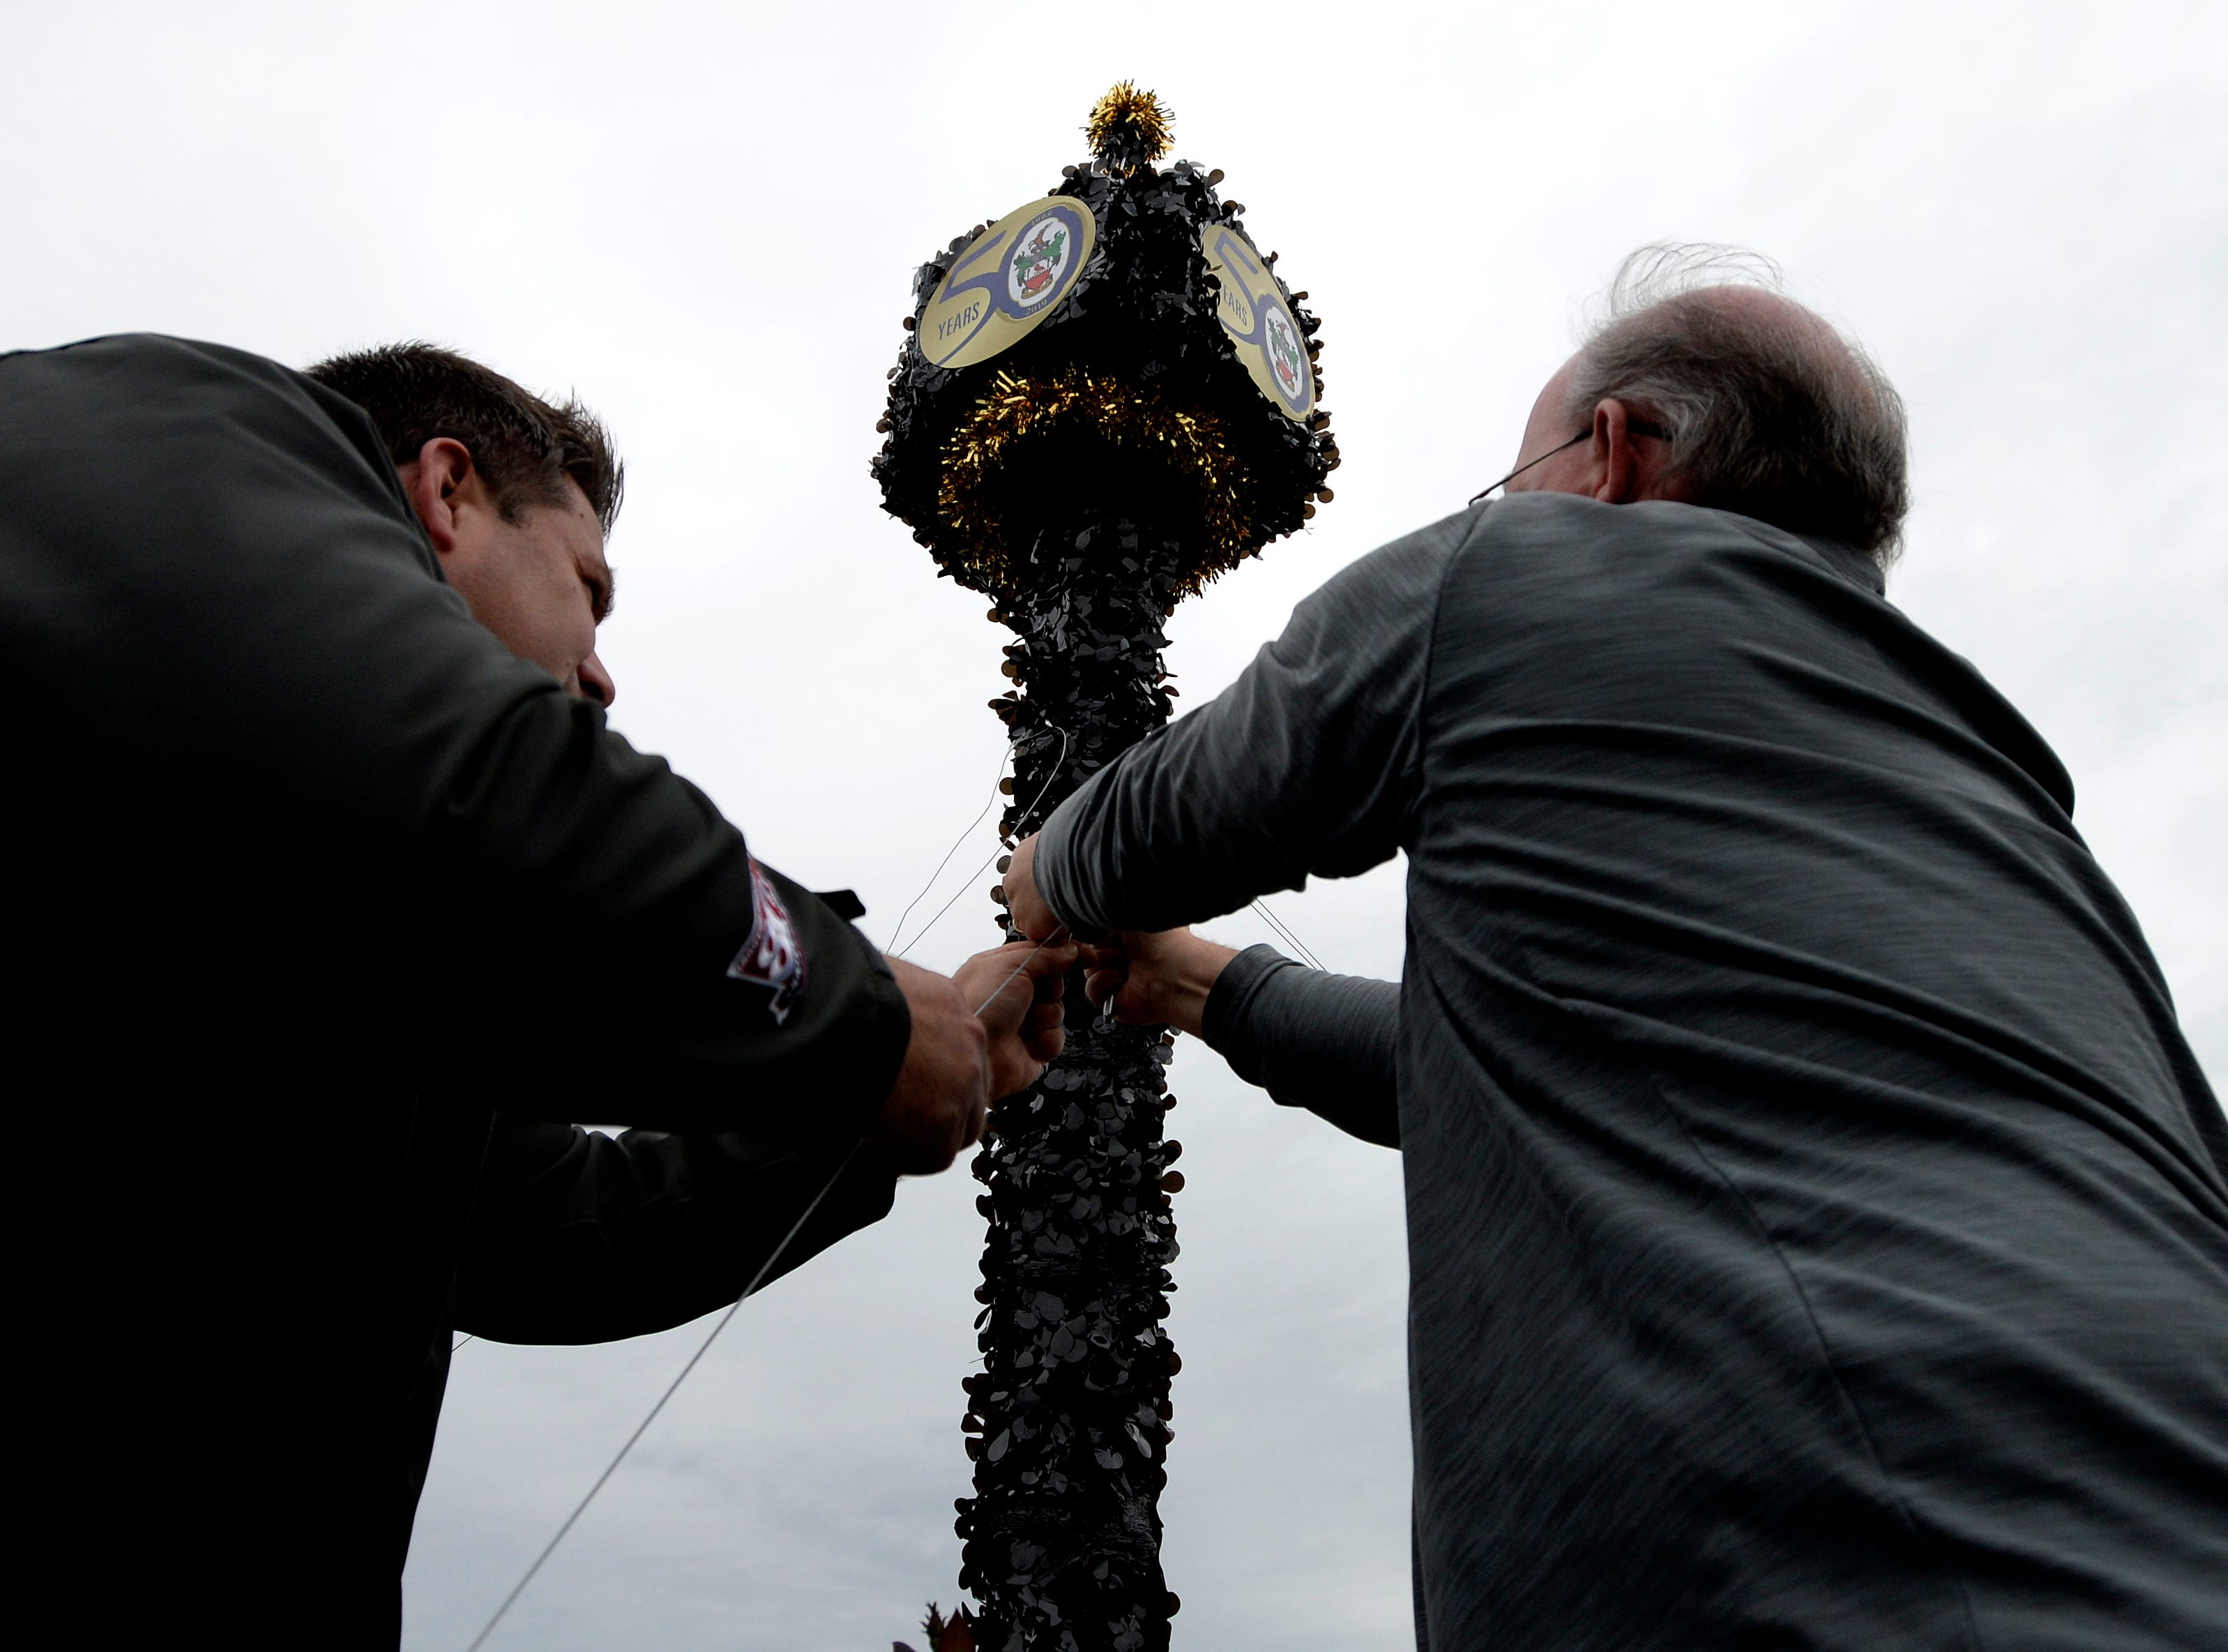 """Glenn Allison, left, and Steve Lugwig adjust wires to Brentwood Morning Rotary float before the start of Brentwood's """"A Golden Gallop"""" parade celebrating its 50th year as a community on Saturday, April 13, 2019, in Brentwood, Tenn."""